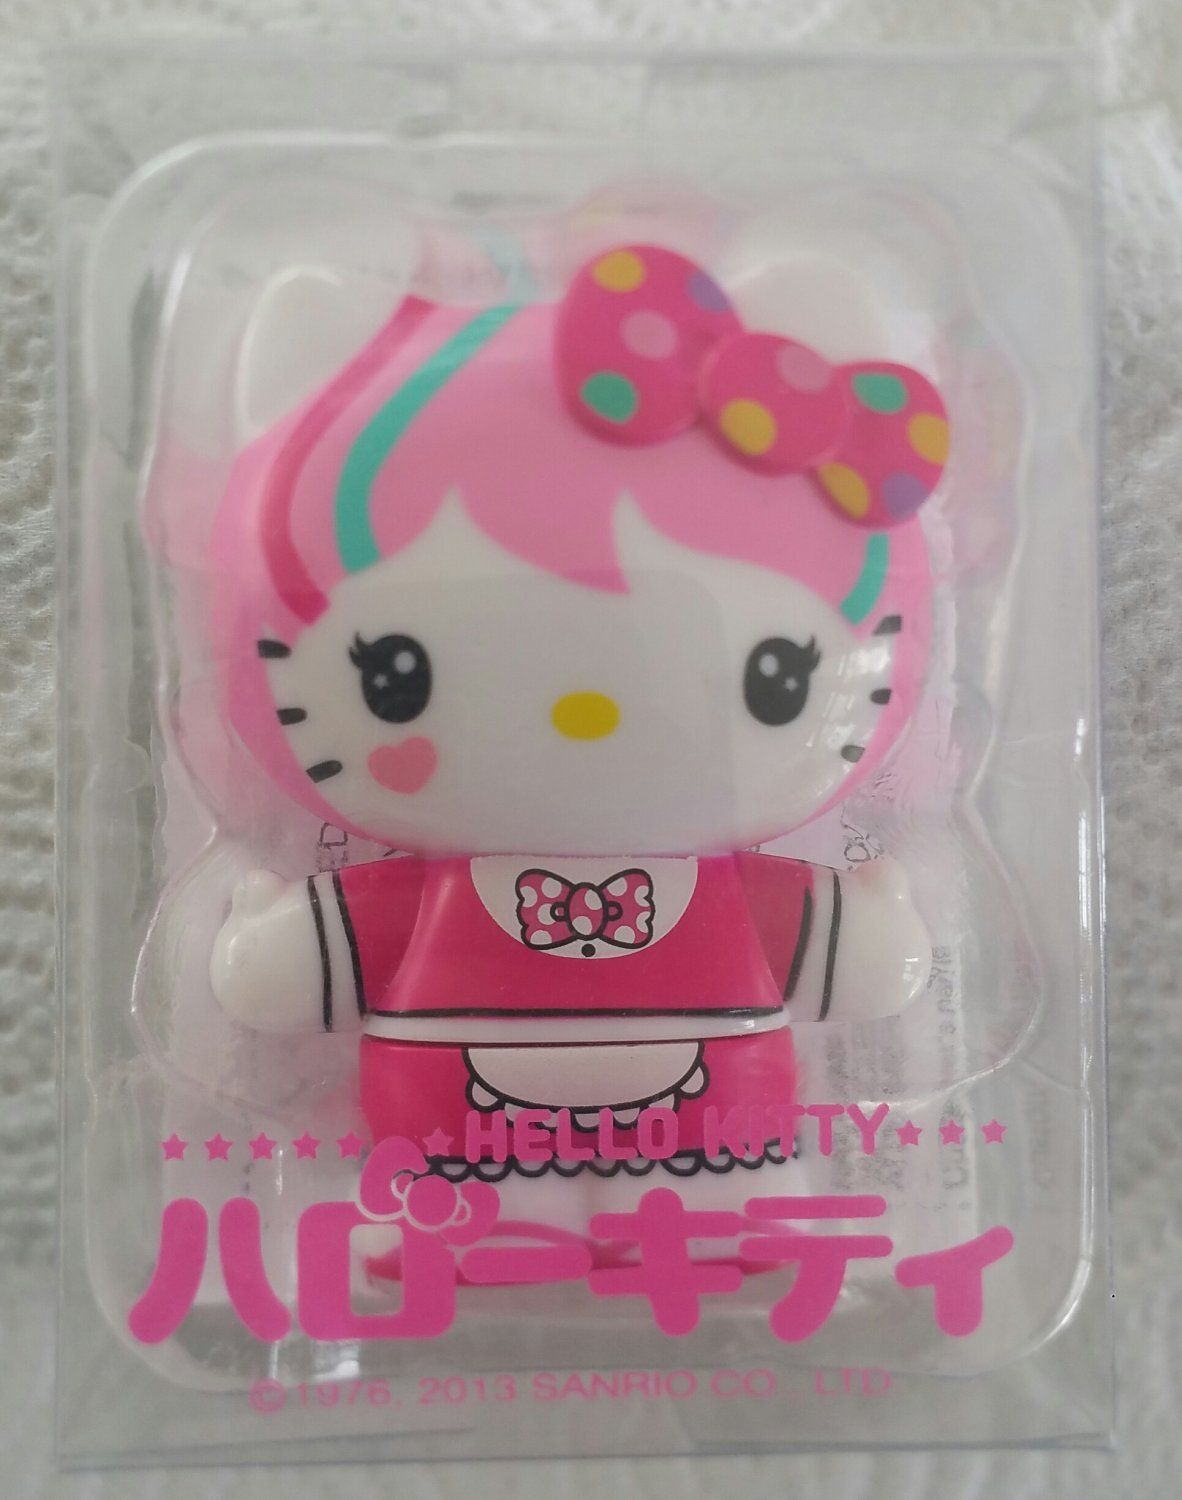 c69833086 Sanrio Limited Edition 2013 Hello Kitty Japanimation Collection 4GB USB  Flash Drive Collectible Figure